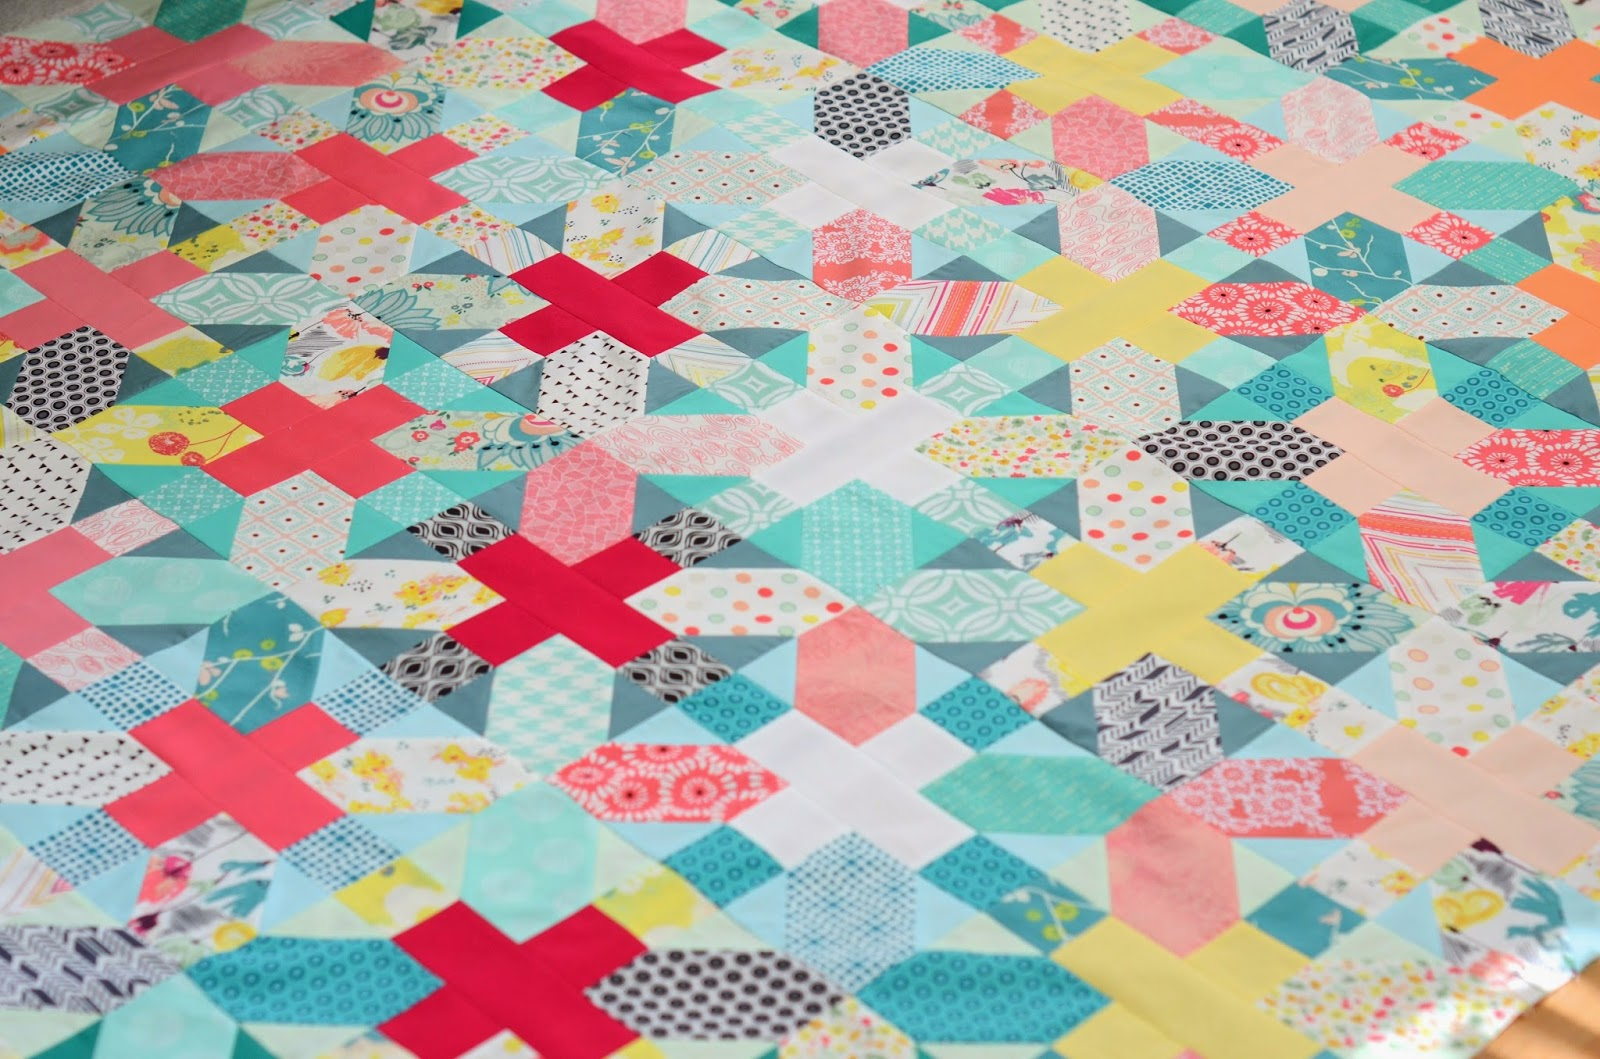 two found i d morton great and jo make patchwork look that to this quilting quilt american love sampler from awesume inside first at country pi quilts